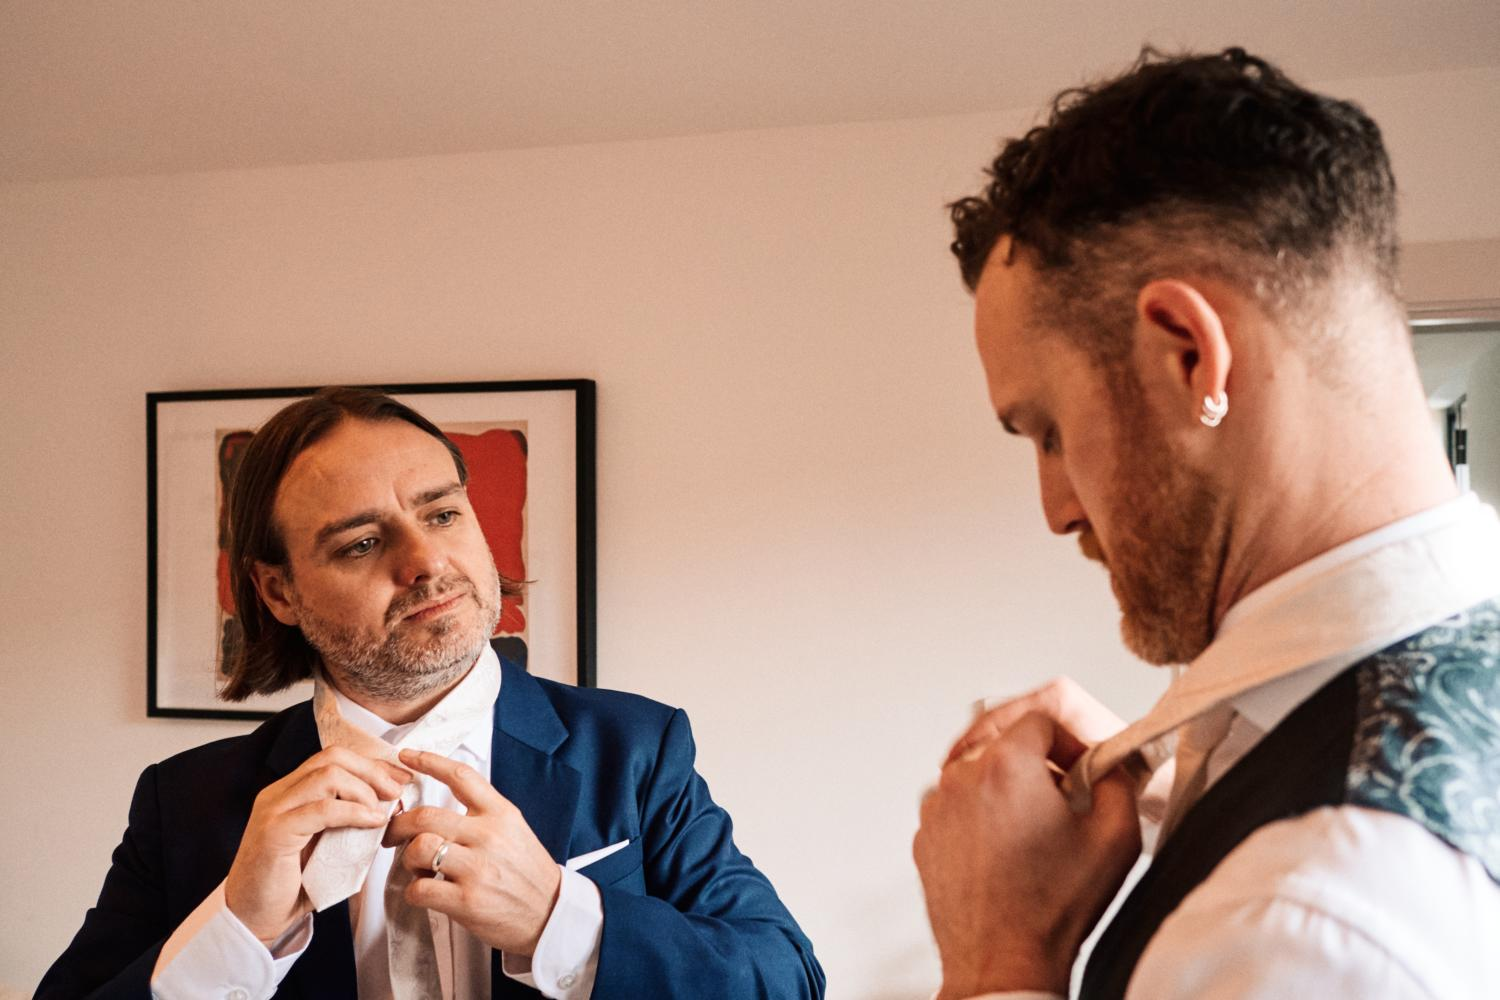 A groom and friend do their ties on a wedding morning